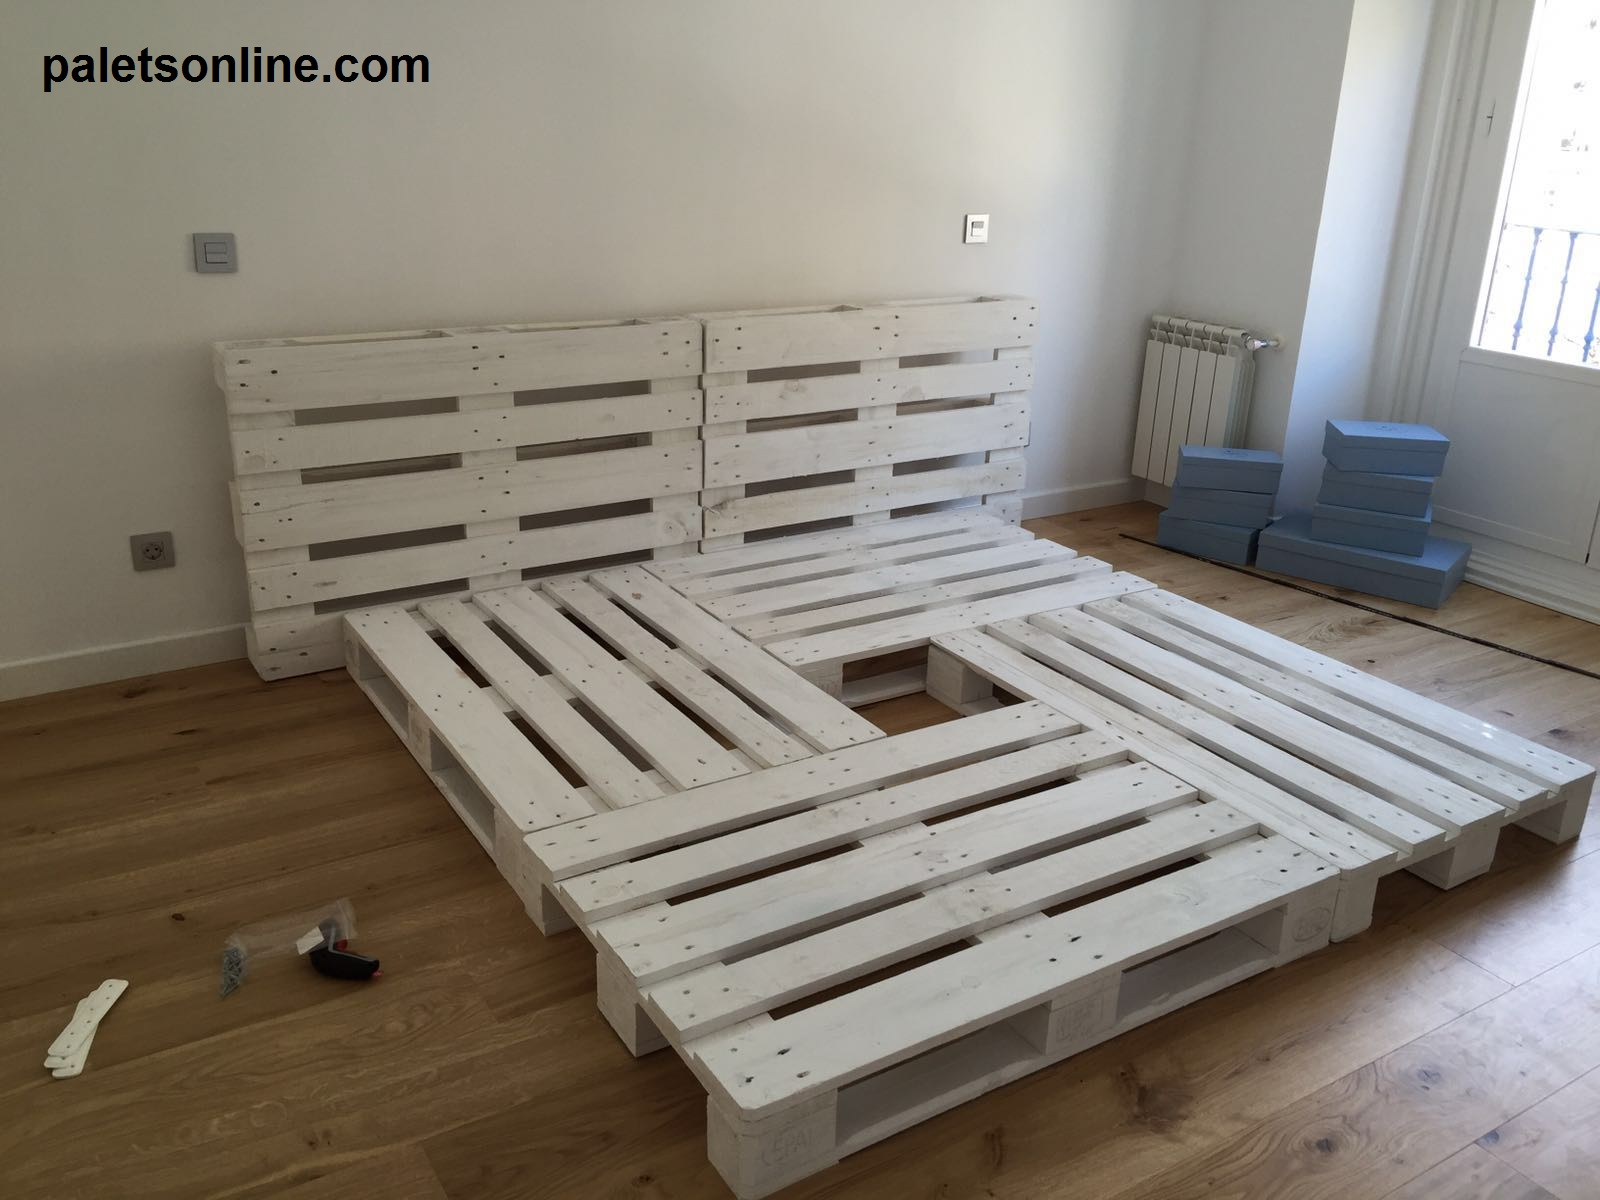 Muebles con palets for Base de cama matrimonial con tarimas